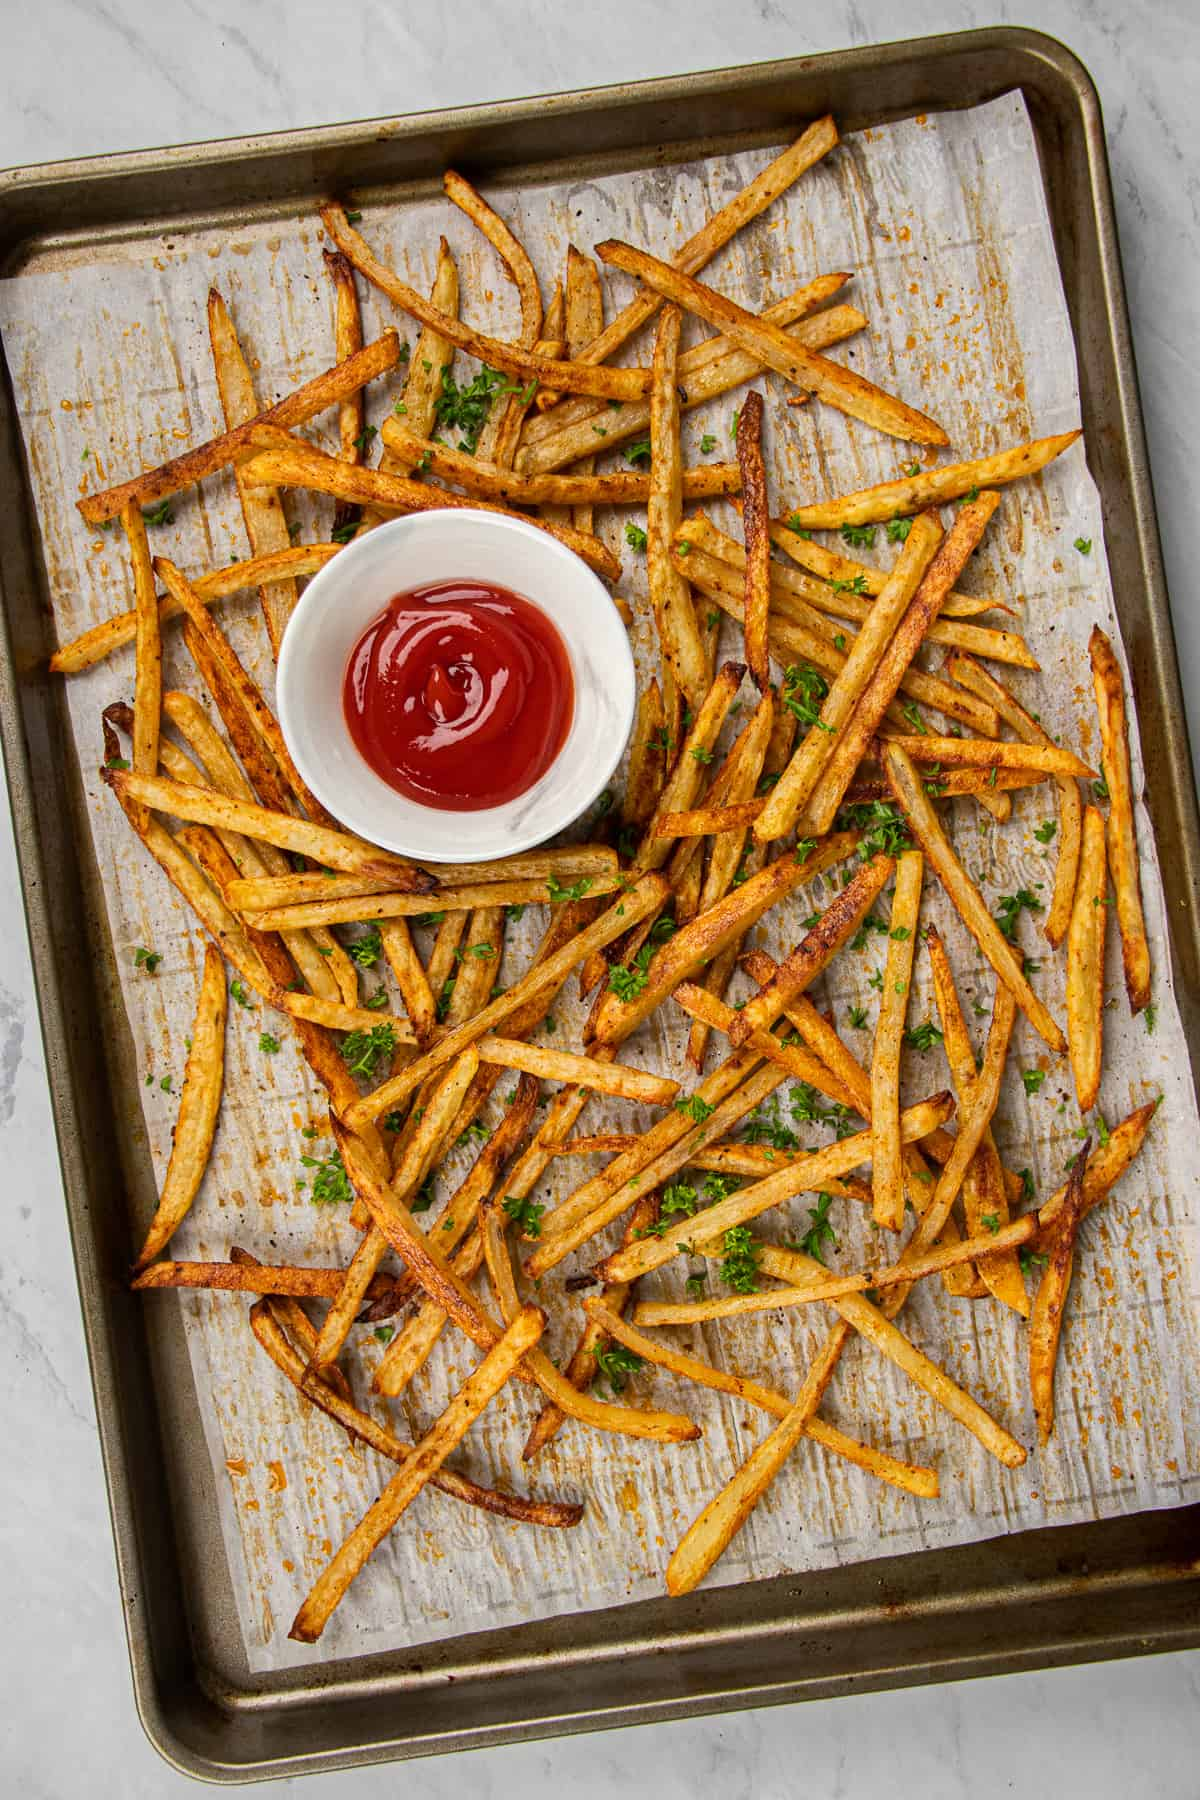 baked fries with ketchup on a baking sheet.